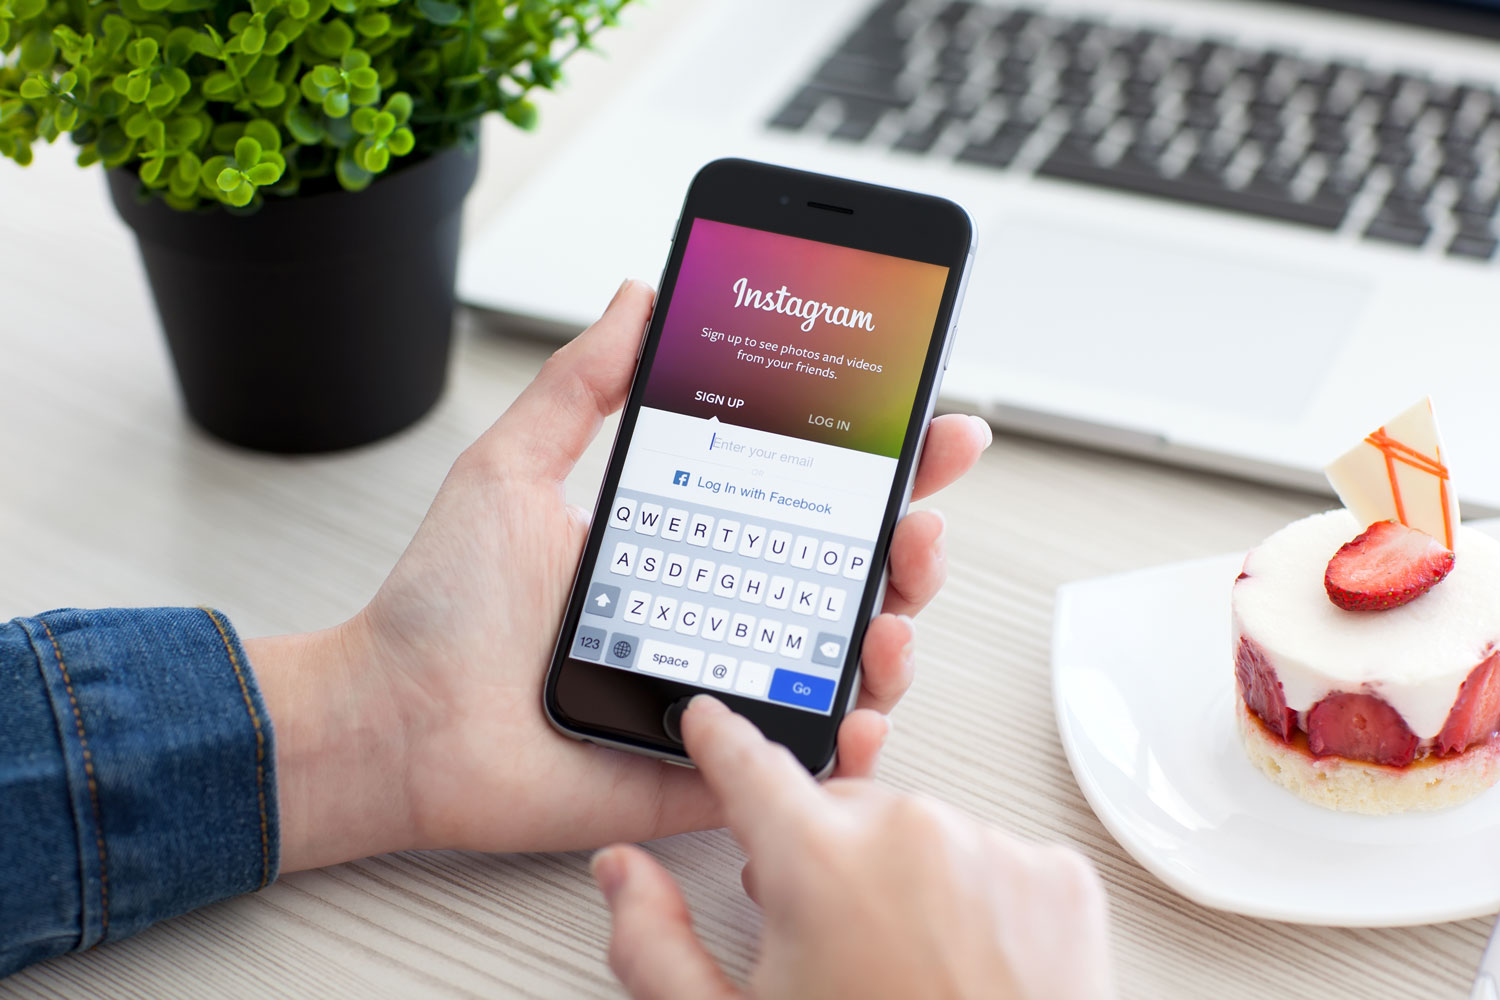 instagram-keyboard-app-take-pictures-photos-pics